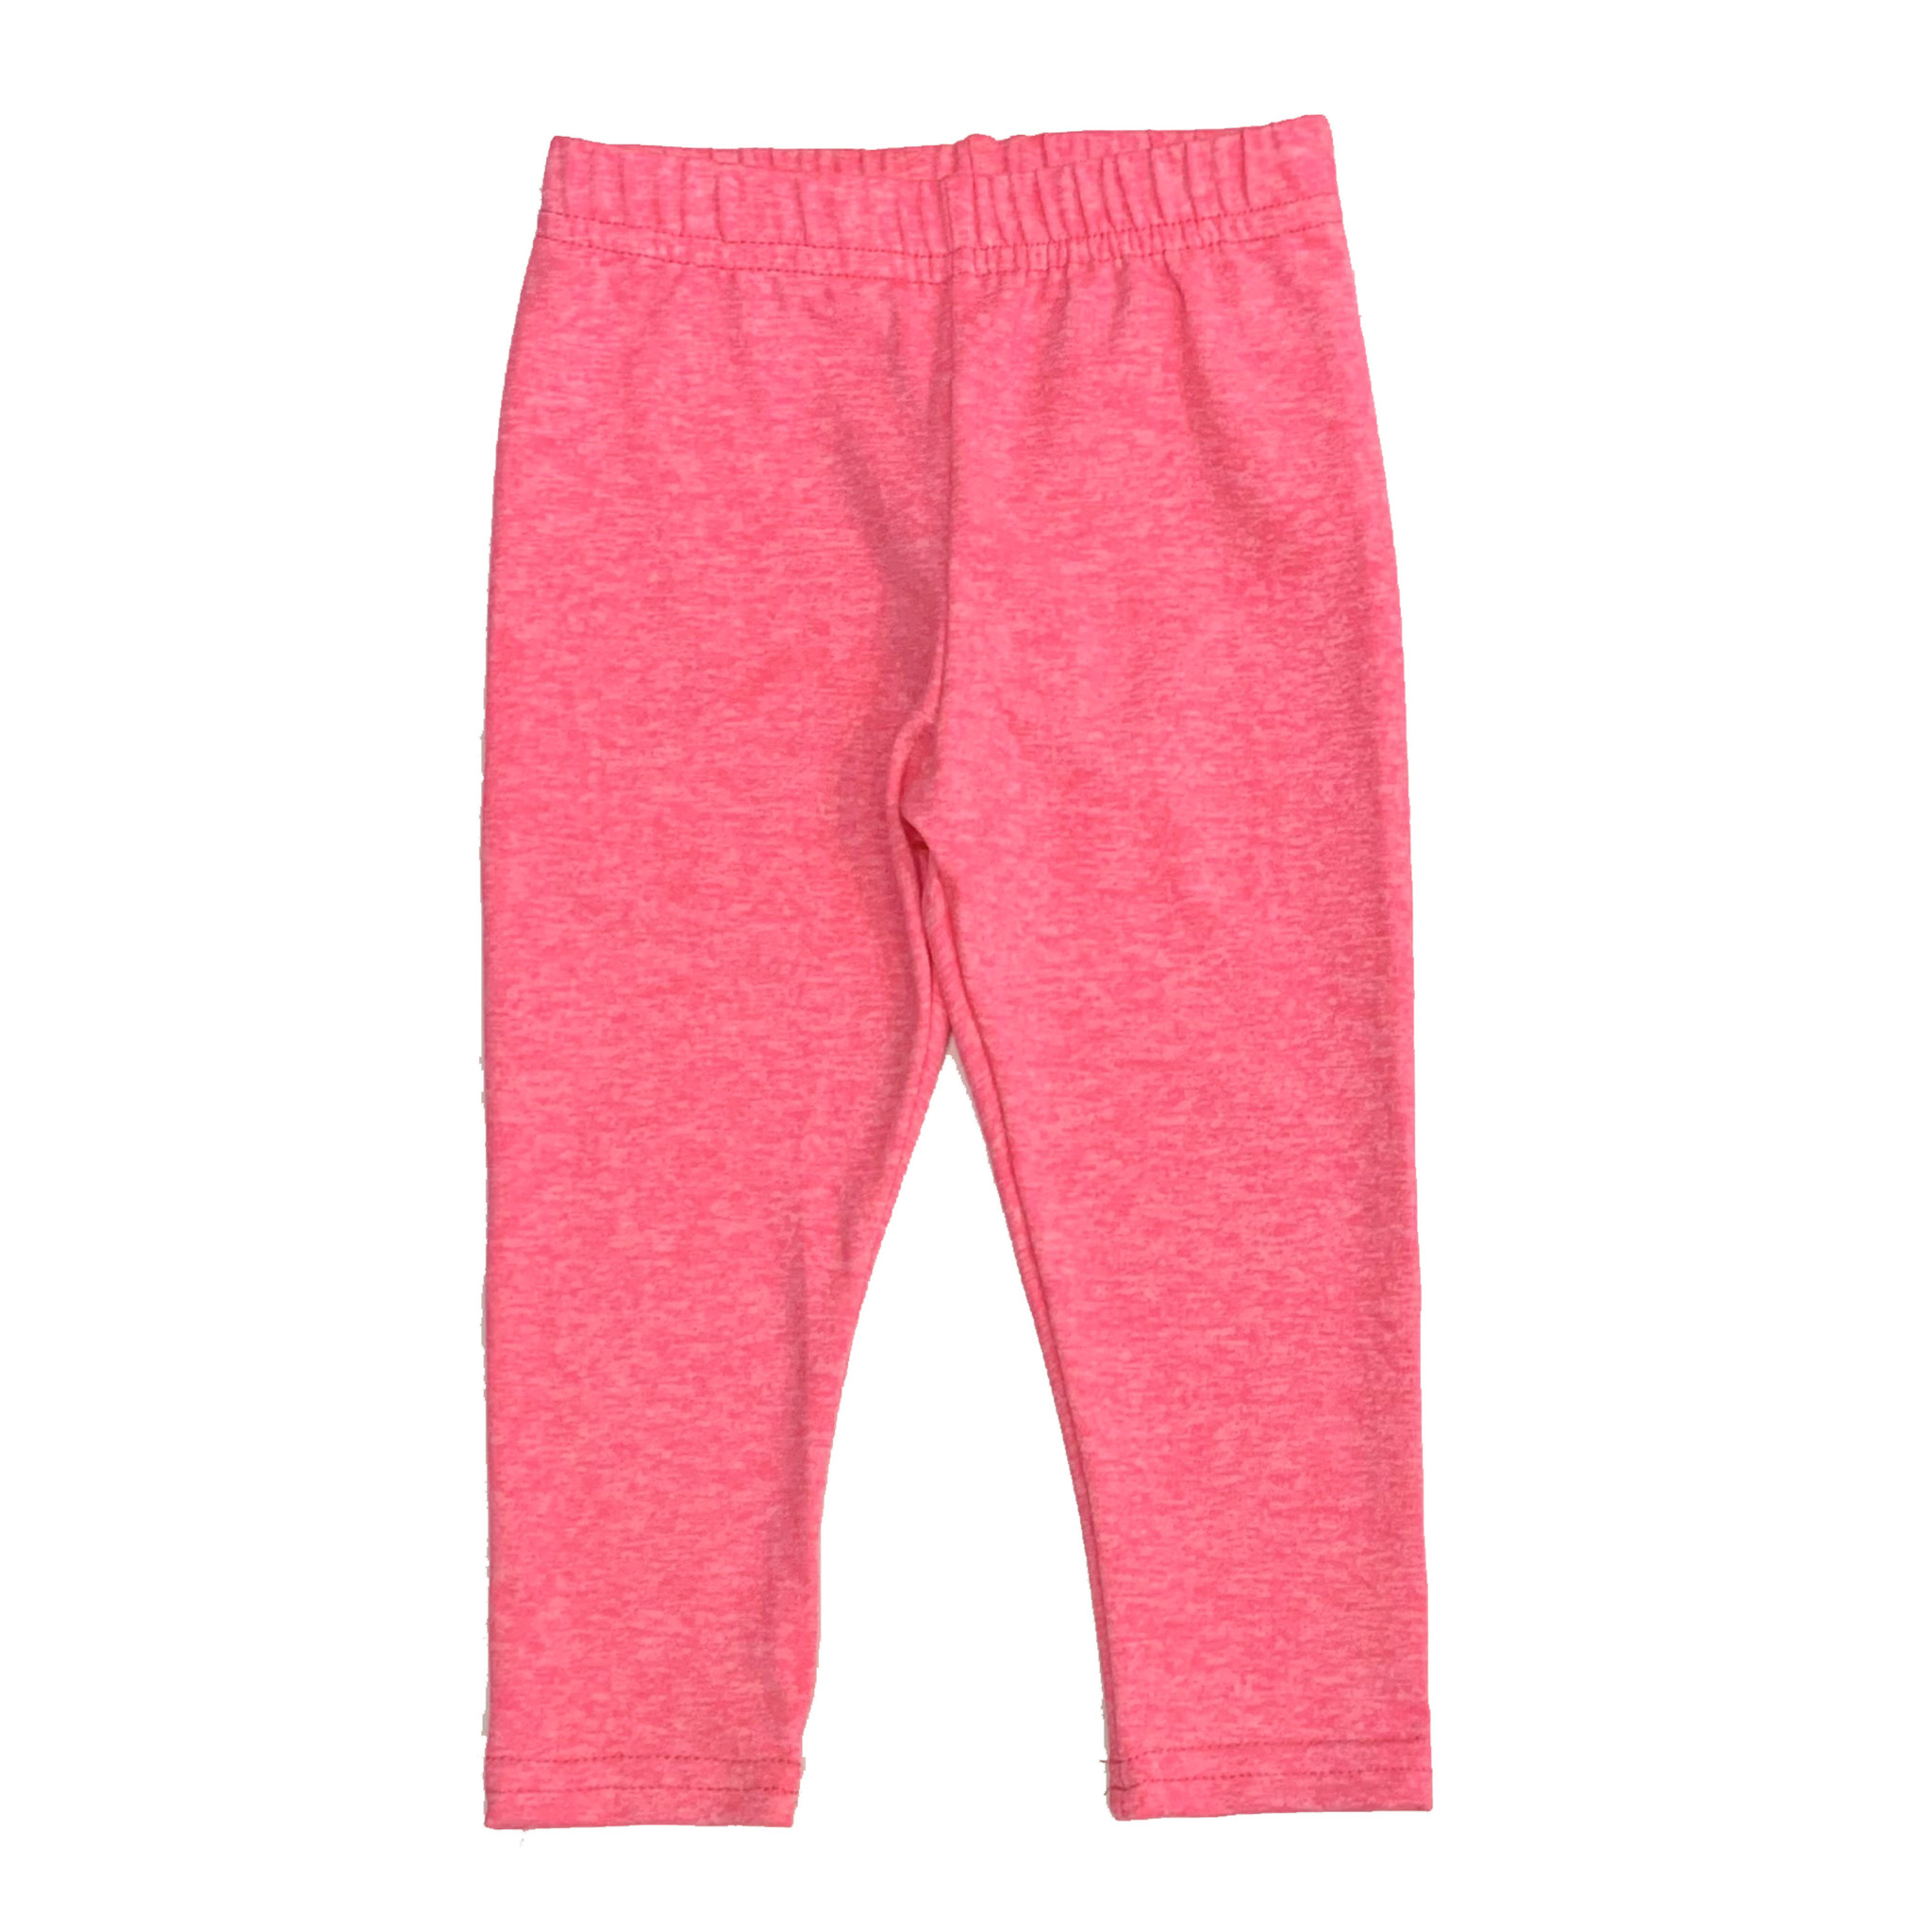 Dori Creations Neon Pink/White Heathered Infant Legging